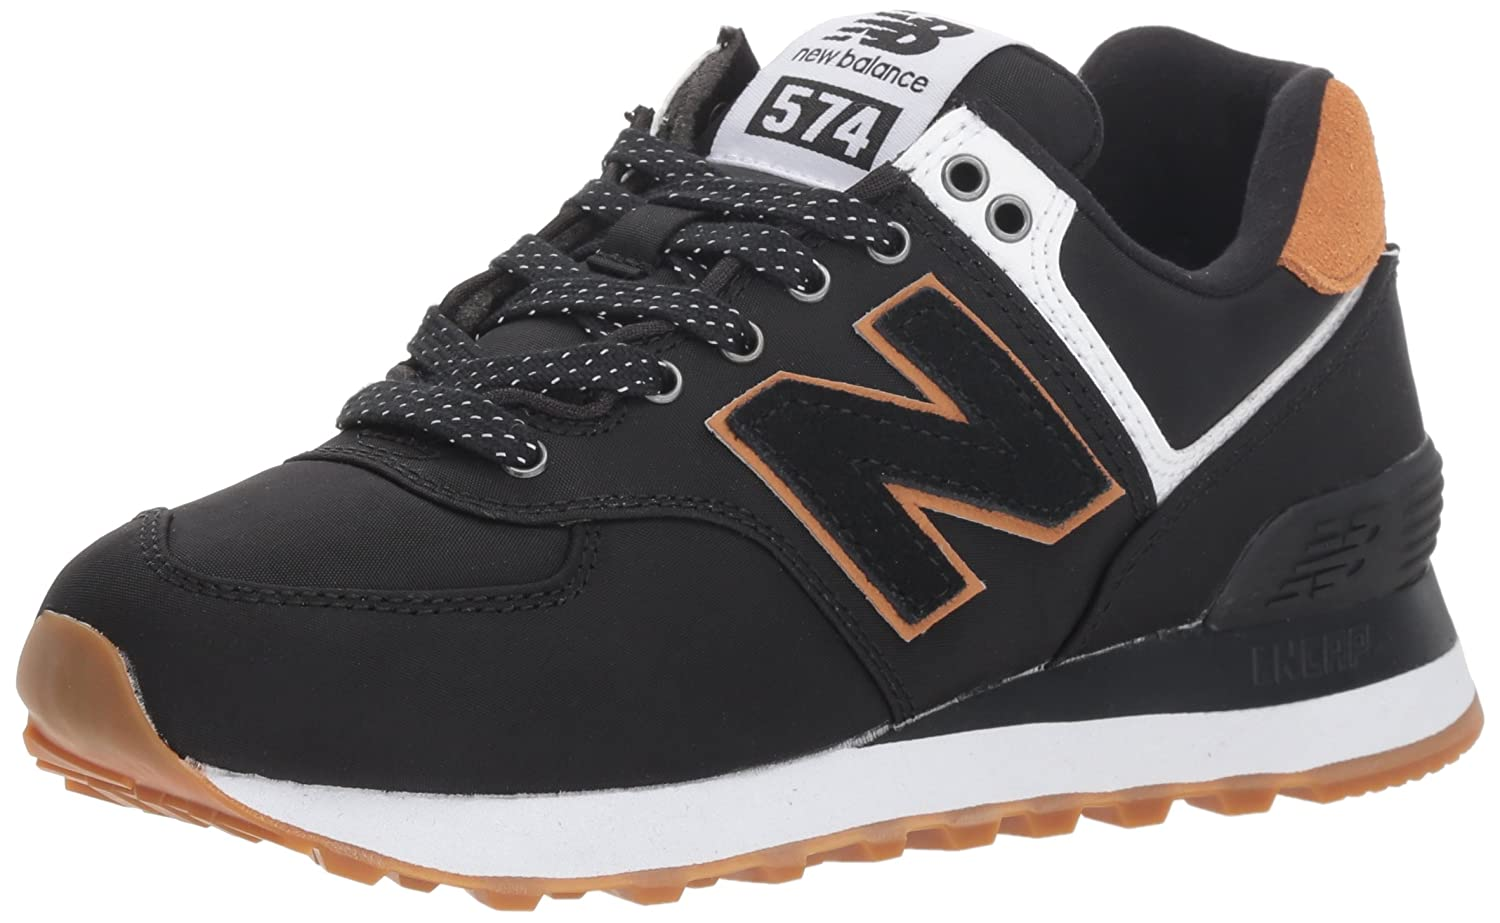 New Balance Women's 574v2 Sneaker B075R6Z1L8 8 D US|Black